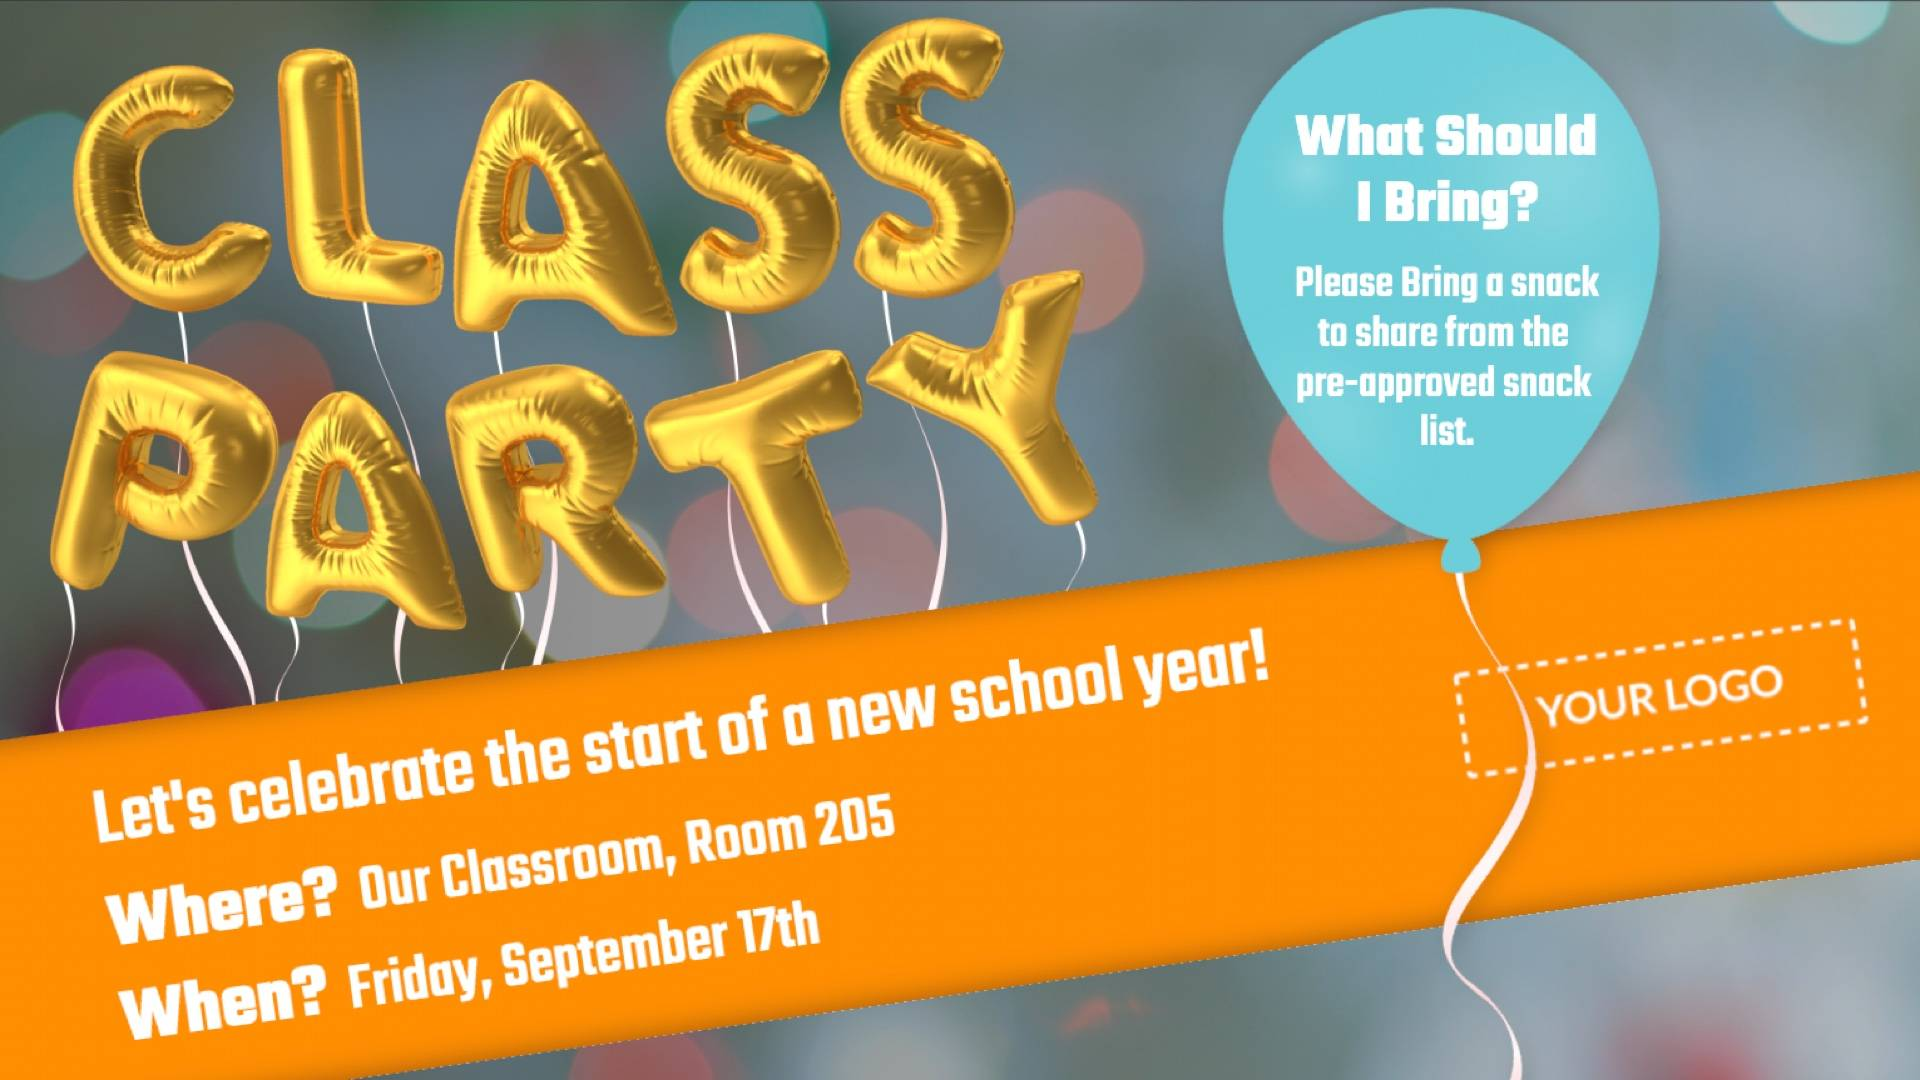 Class Party Digital Signage Template